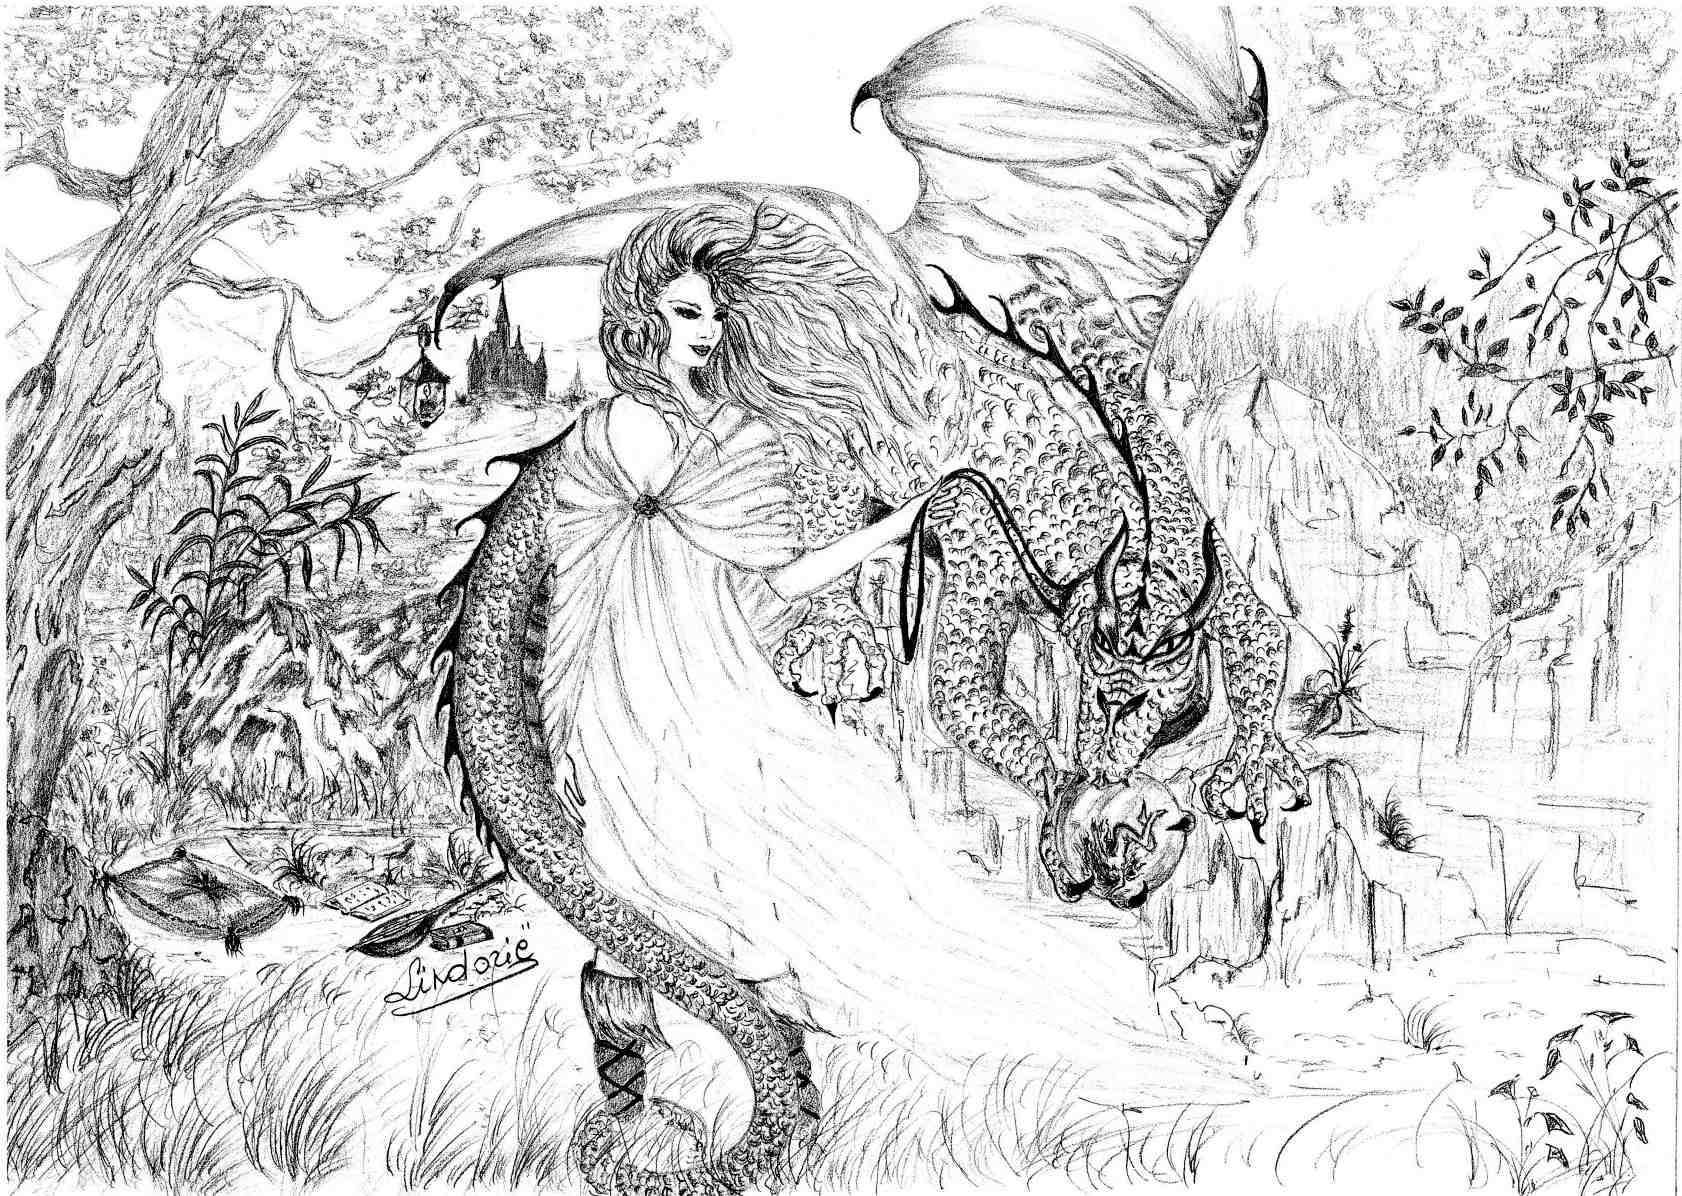 Faeries librerie participations libres lindori - Dessin dragon couleur ...